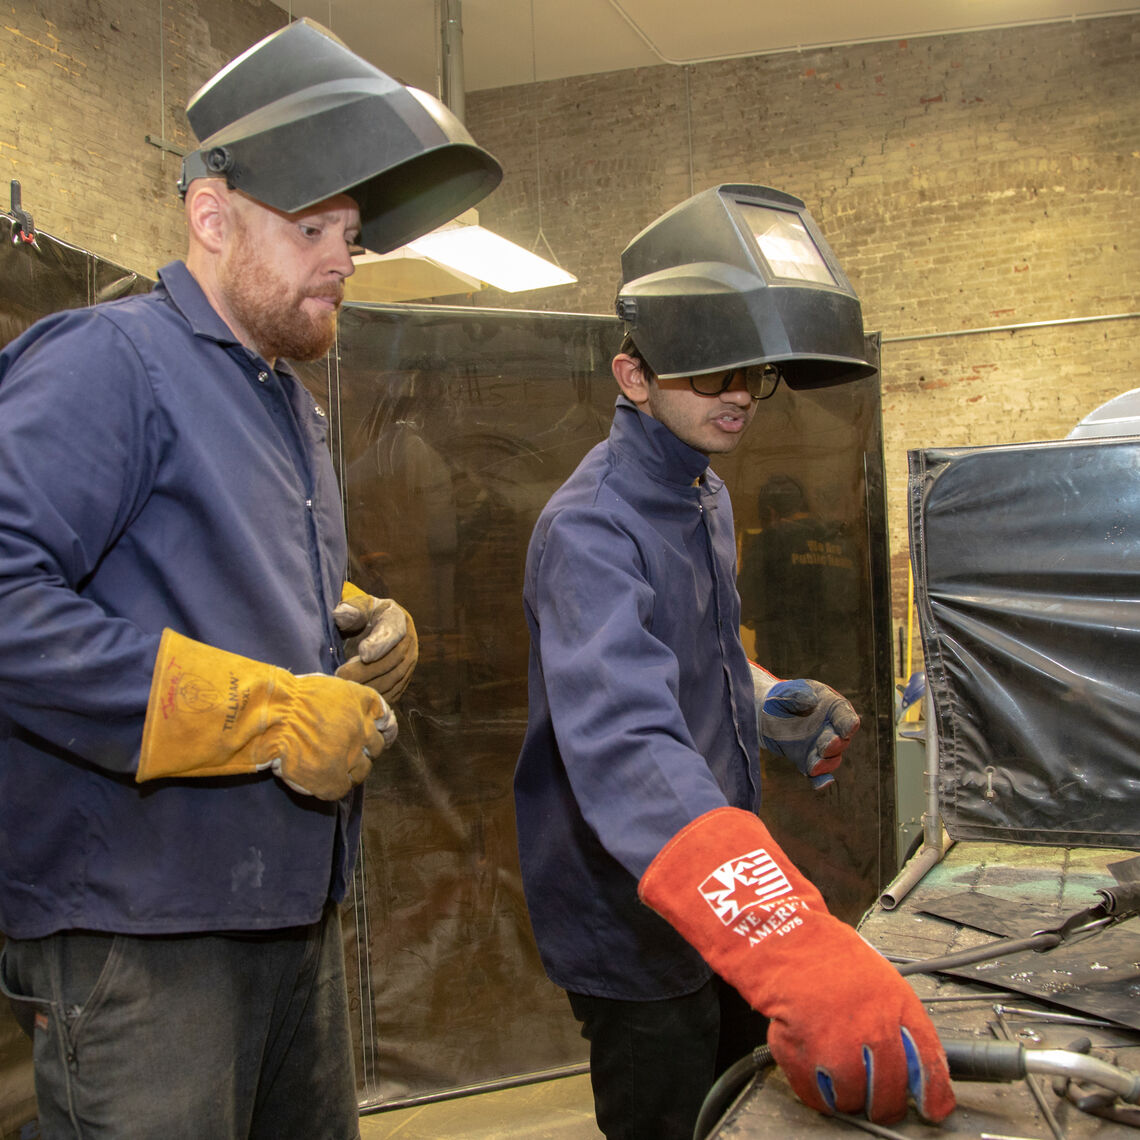 Jason Thompson, Winter Visual Arts Center Sculpture Studio Monitor, works with a student in welding class.